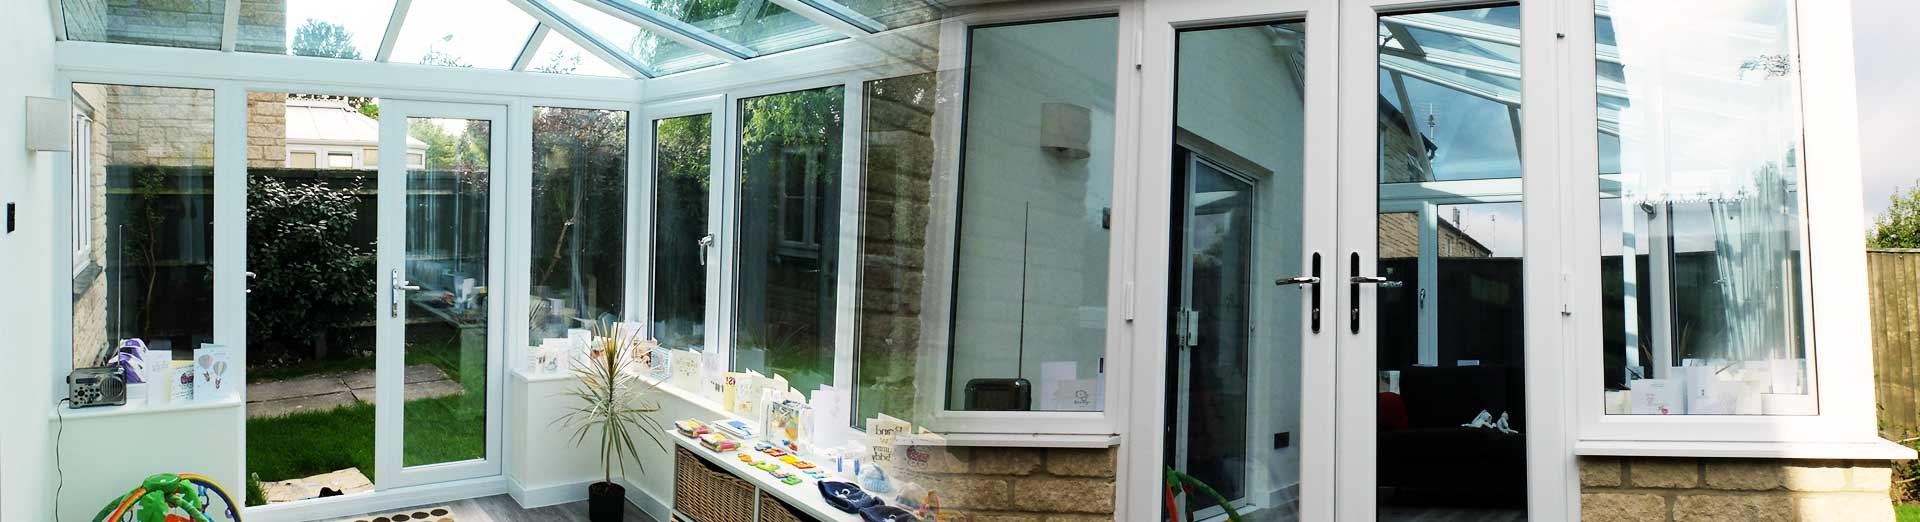 A uPVC conservatory internal view and external view